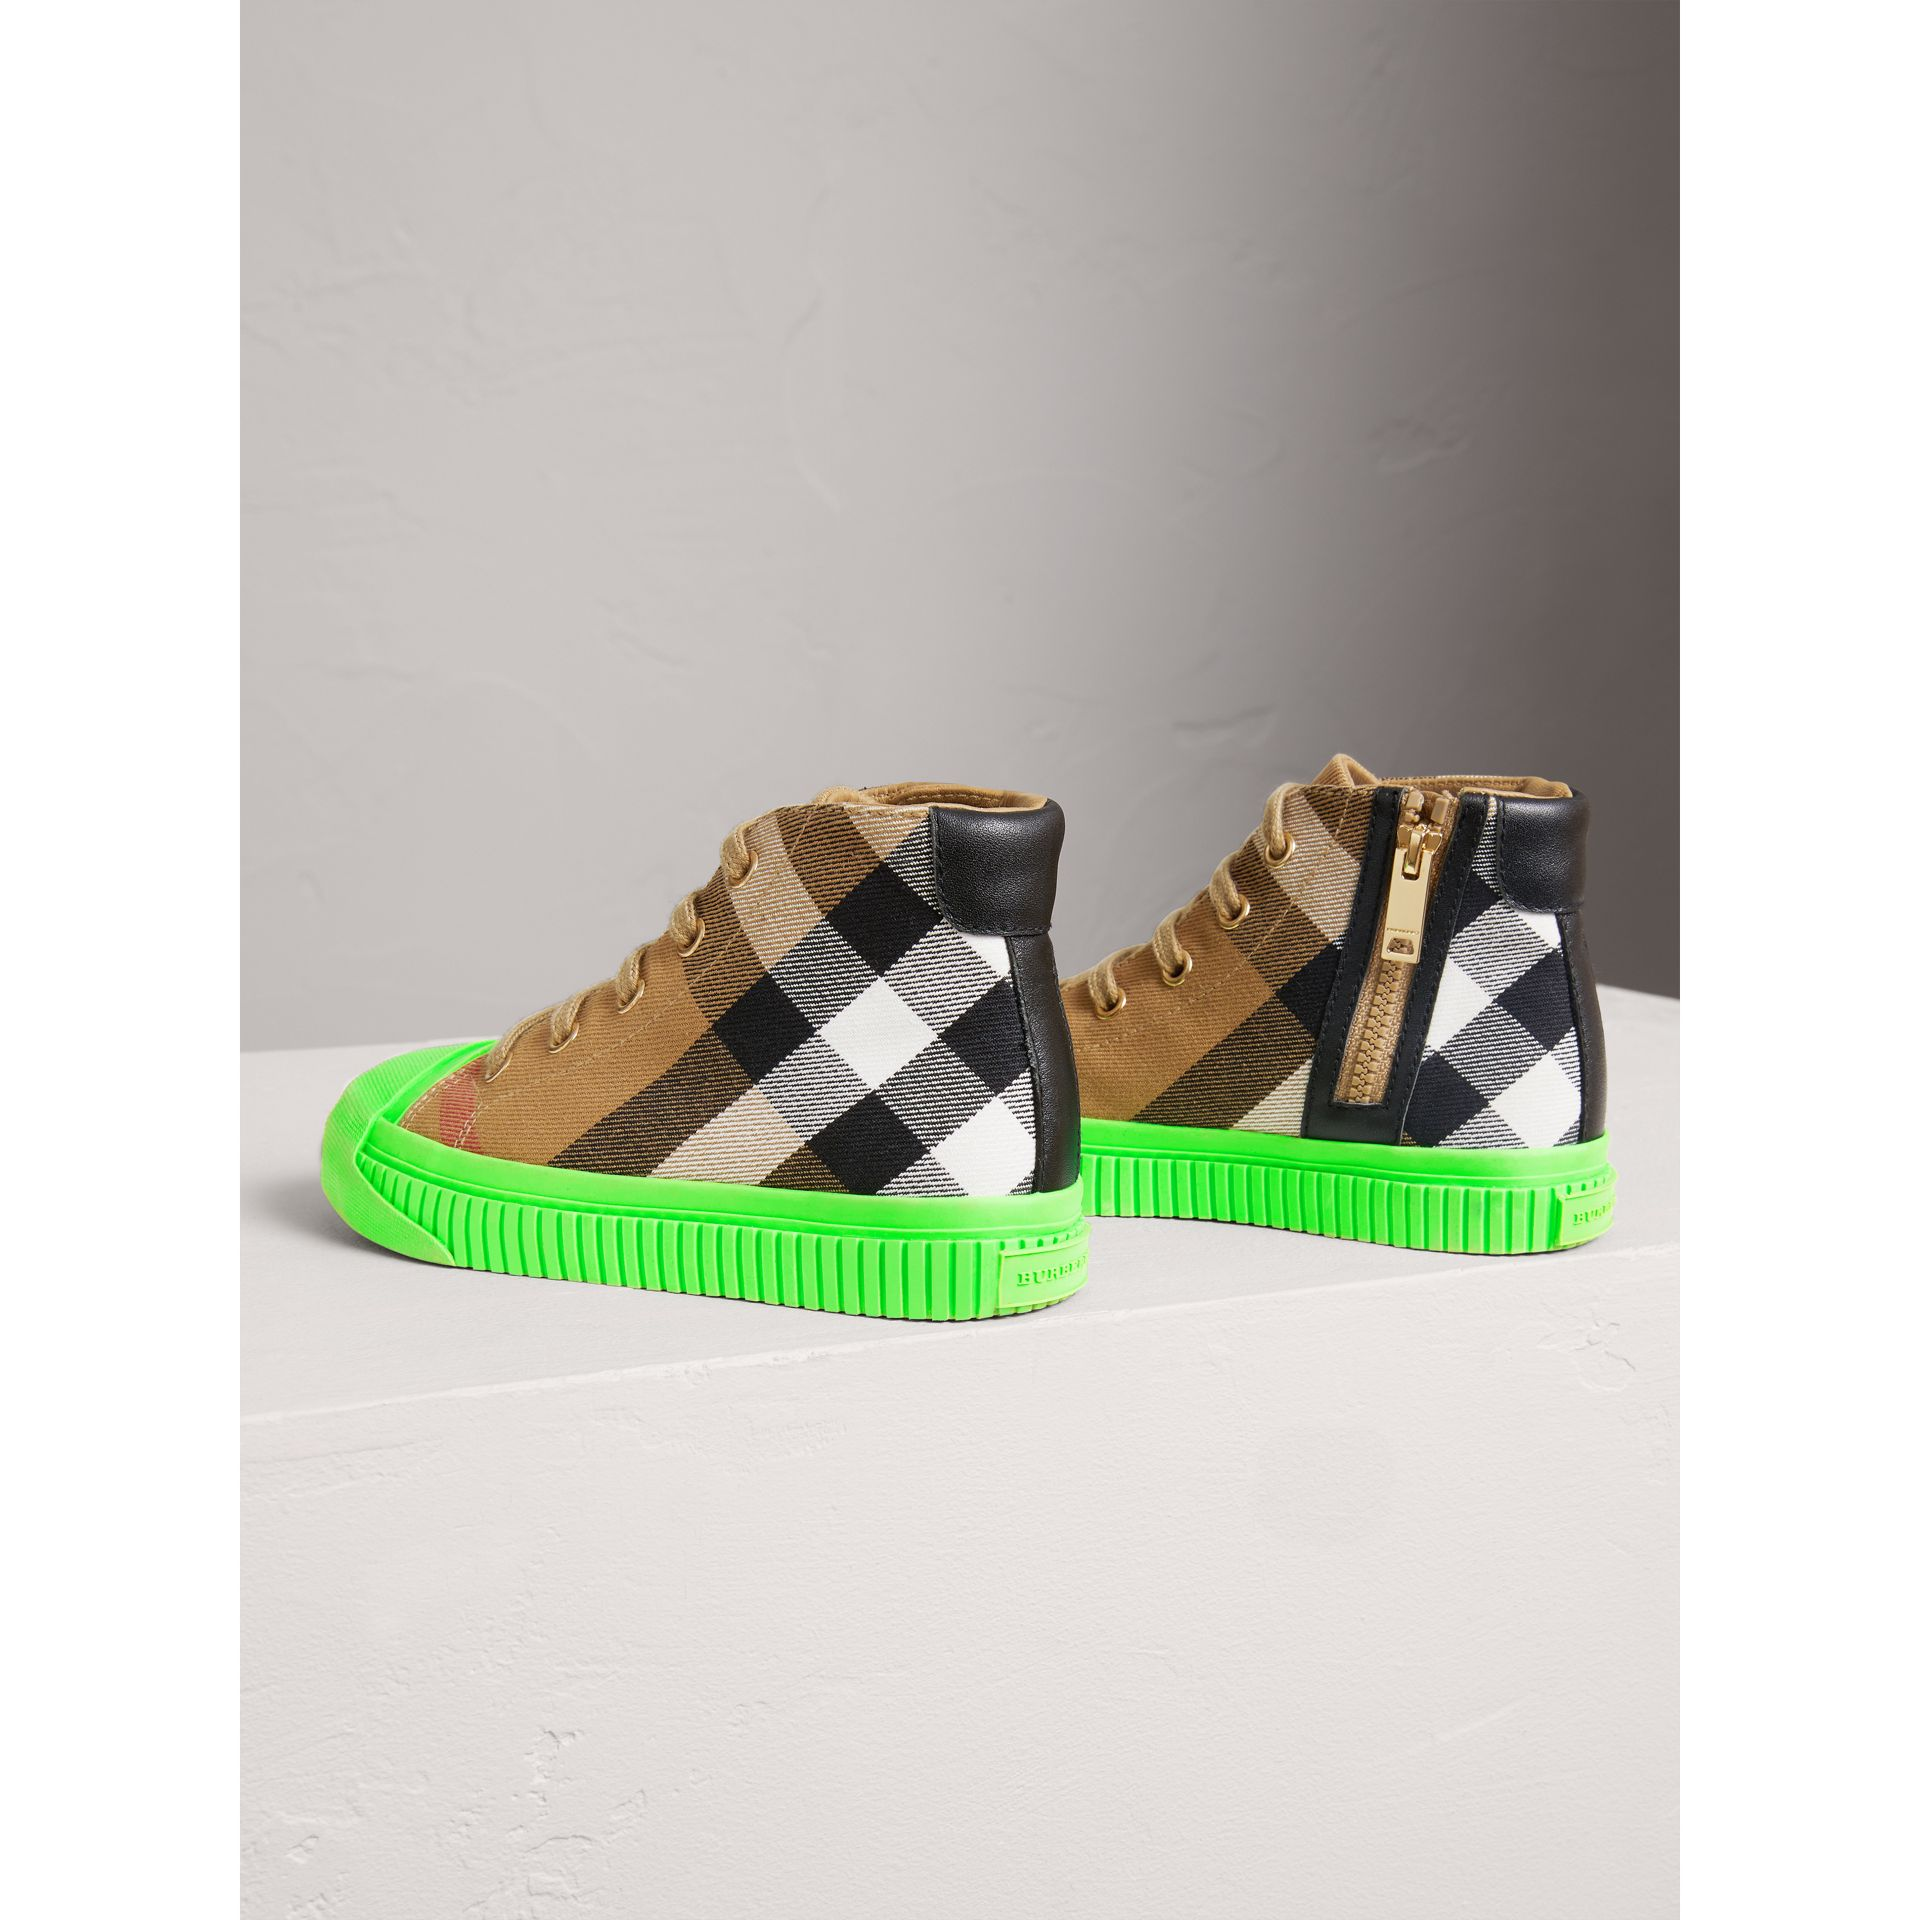 House Check and Leather High-top Sneakers in Classic/neon Green | Burberry - gallery image 2